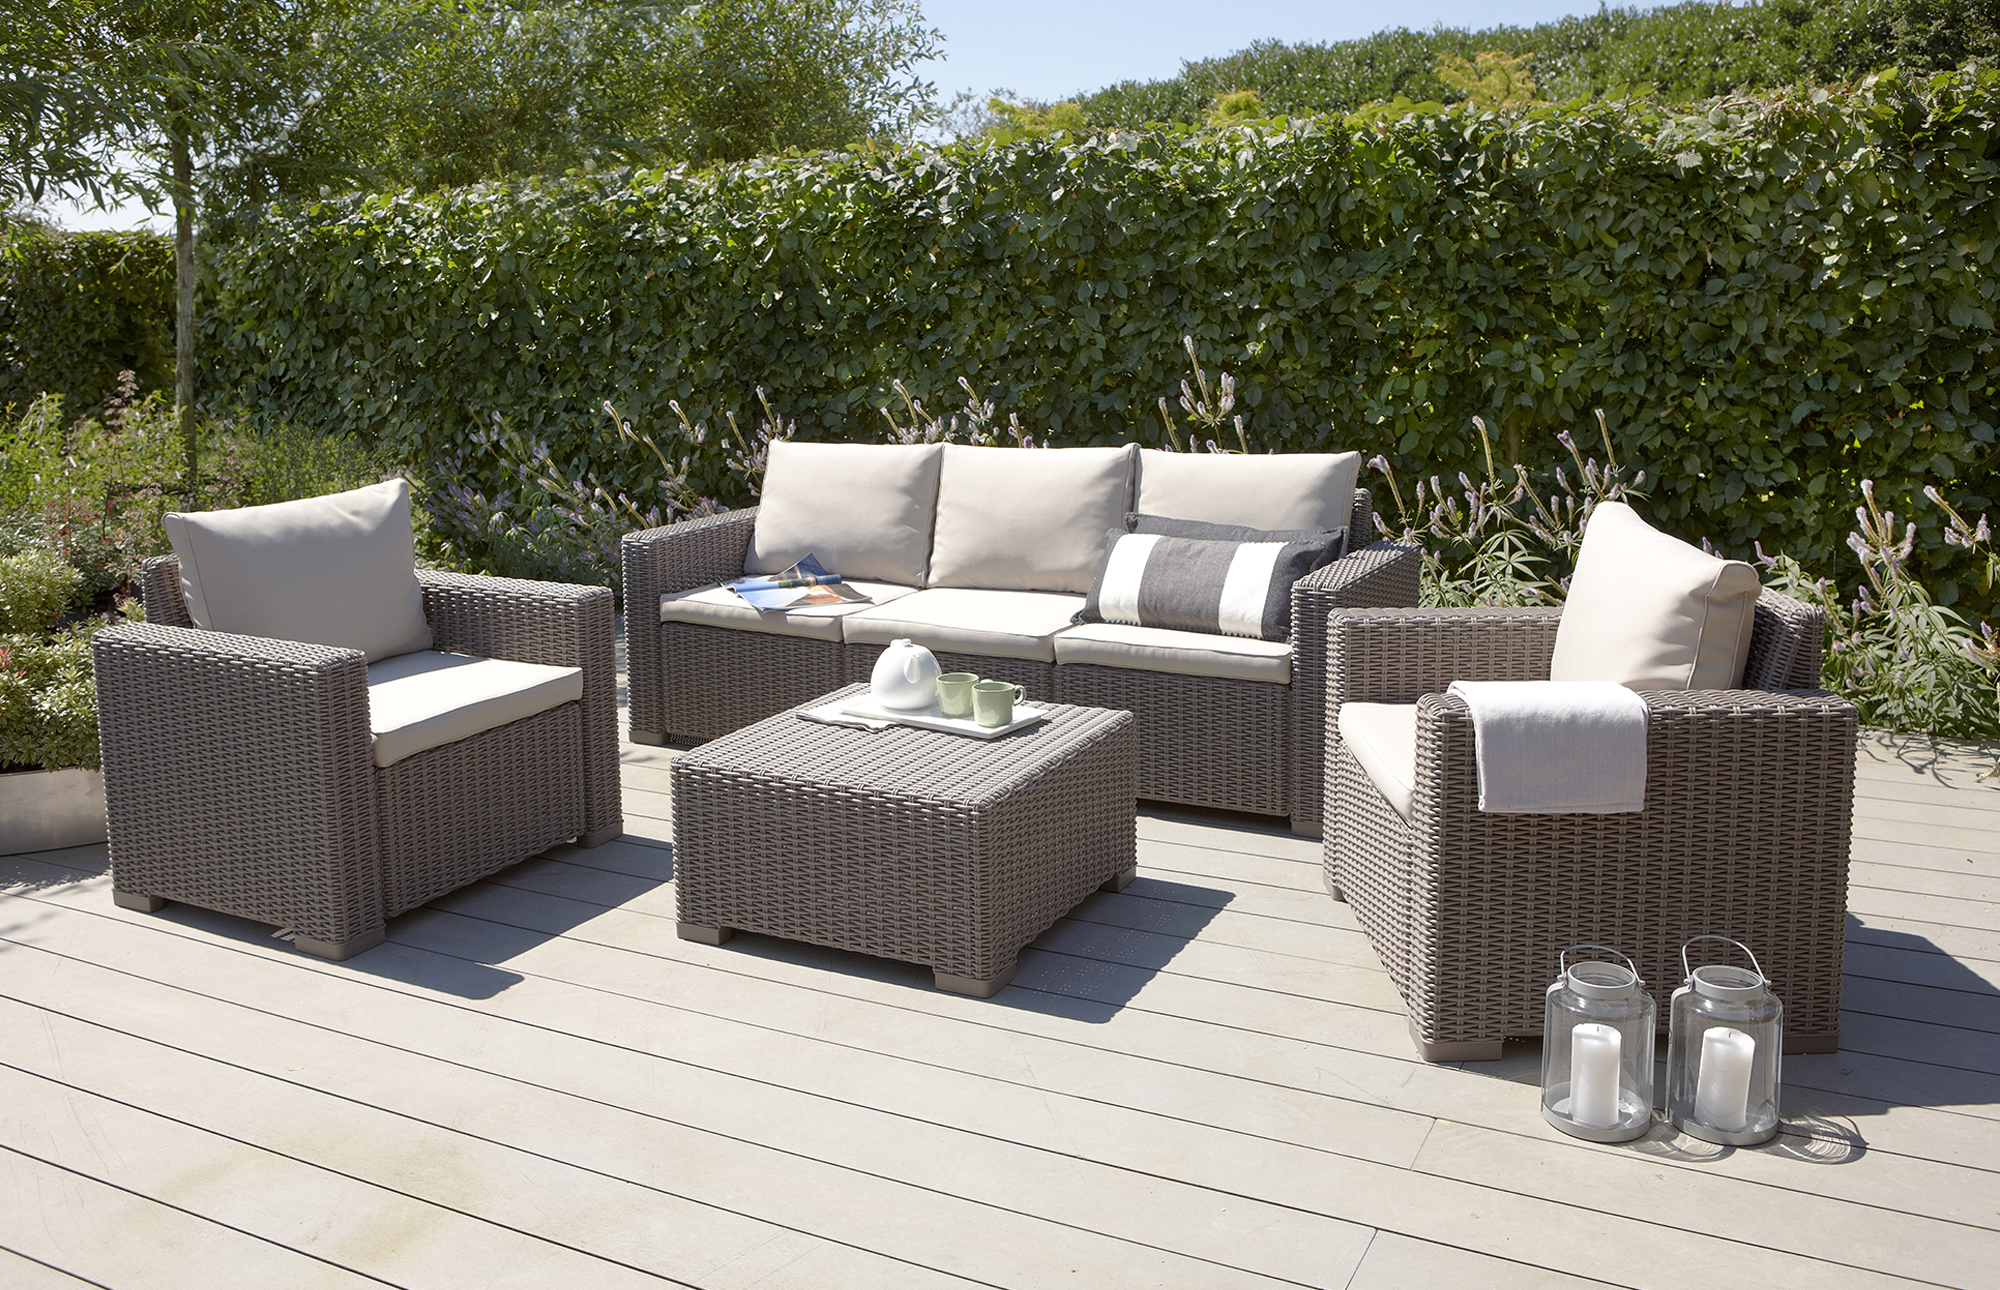 outdoor garden furniture garden-furniture-rattan-sets-breathtaking-rattan-garden-furniture -bistro-sets-breathtaking-outdoor-patio-furniture-covers - rattan garden  furniture sets ... YSSHNLR